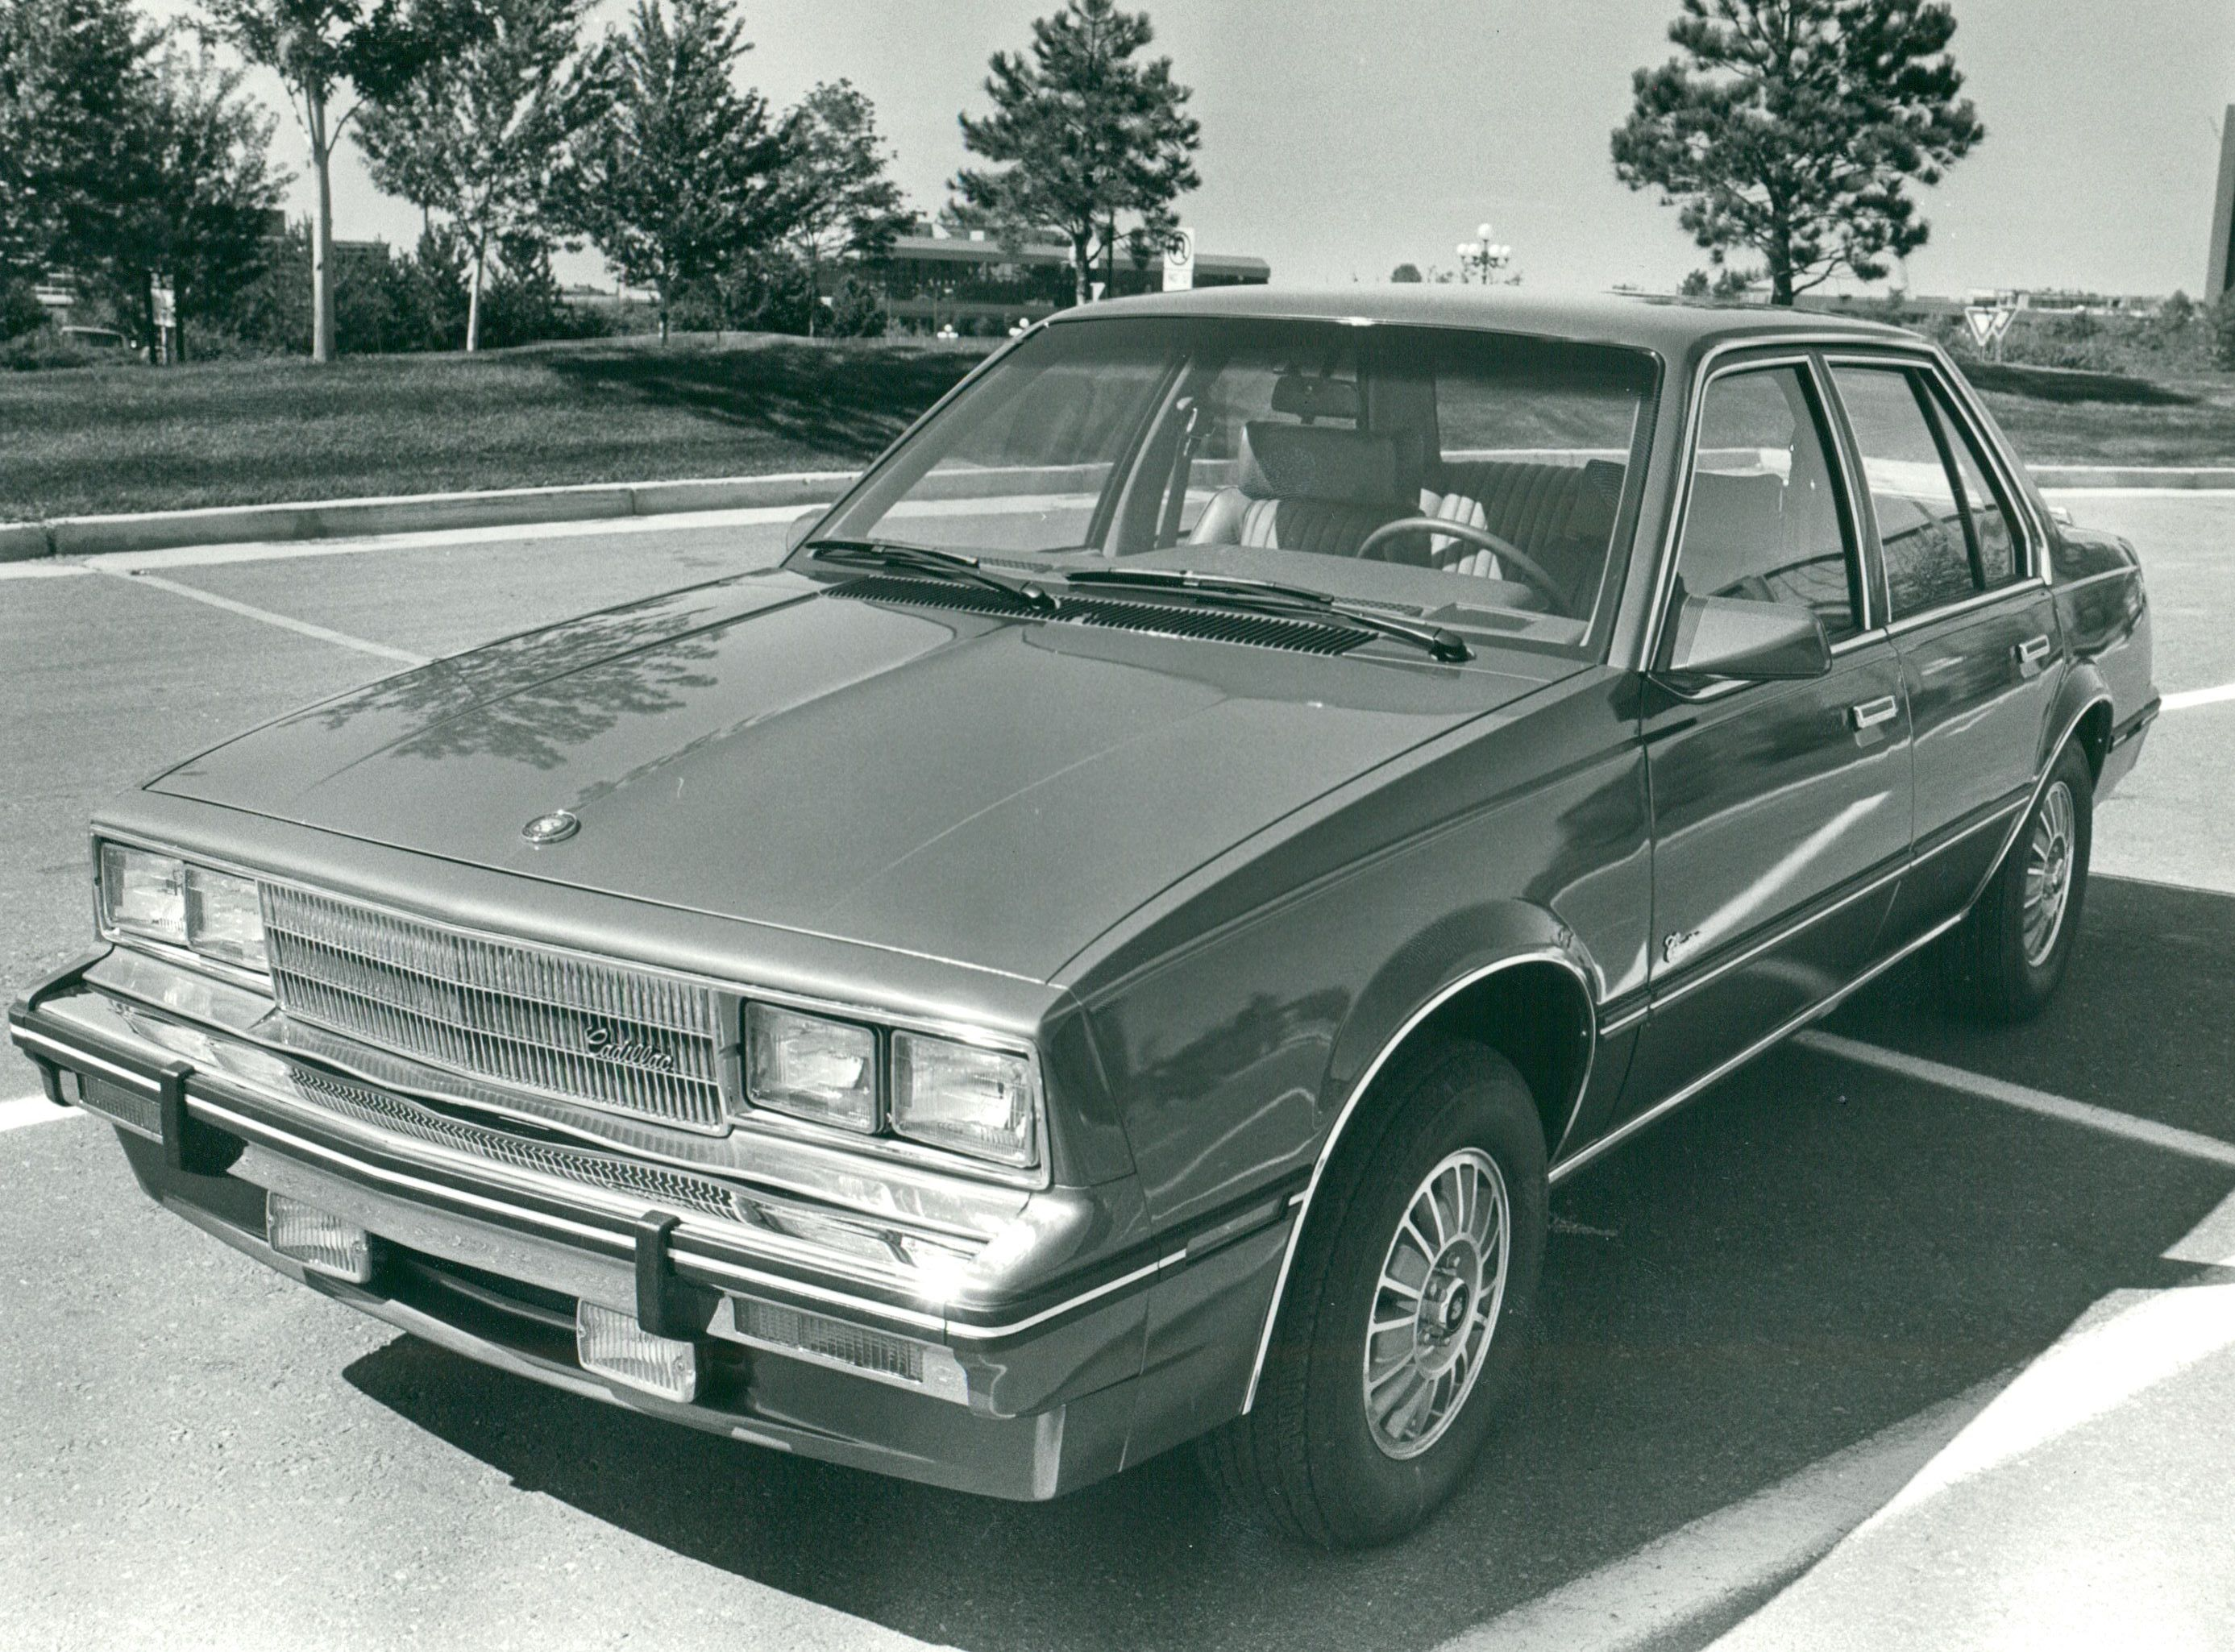 SEP 21 1982, SEP 22 1982; Cadillac Cimarron sports new grille treatment, new fuel-injected 2.0-liter